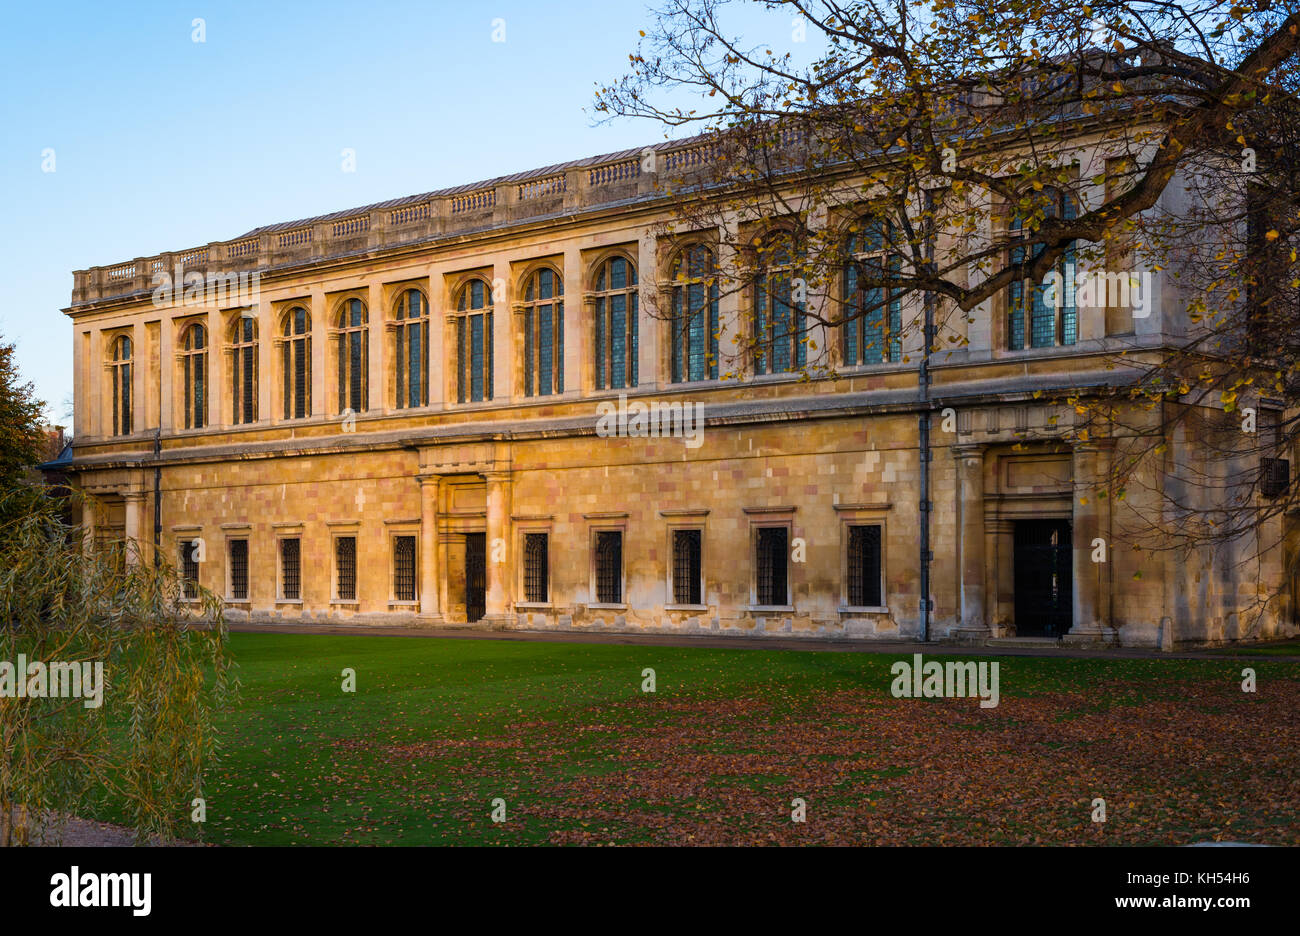 Vista panorámica de la Biblioteca Wren al atardecer, el Trinity College, Universidad de Cambridge, Cambridge, Imagen De Stock